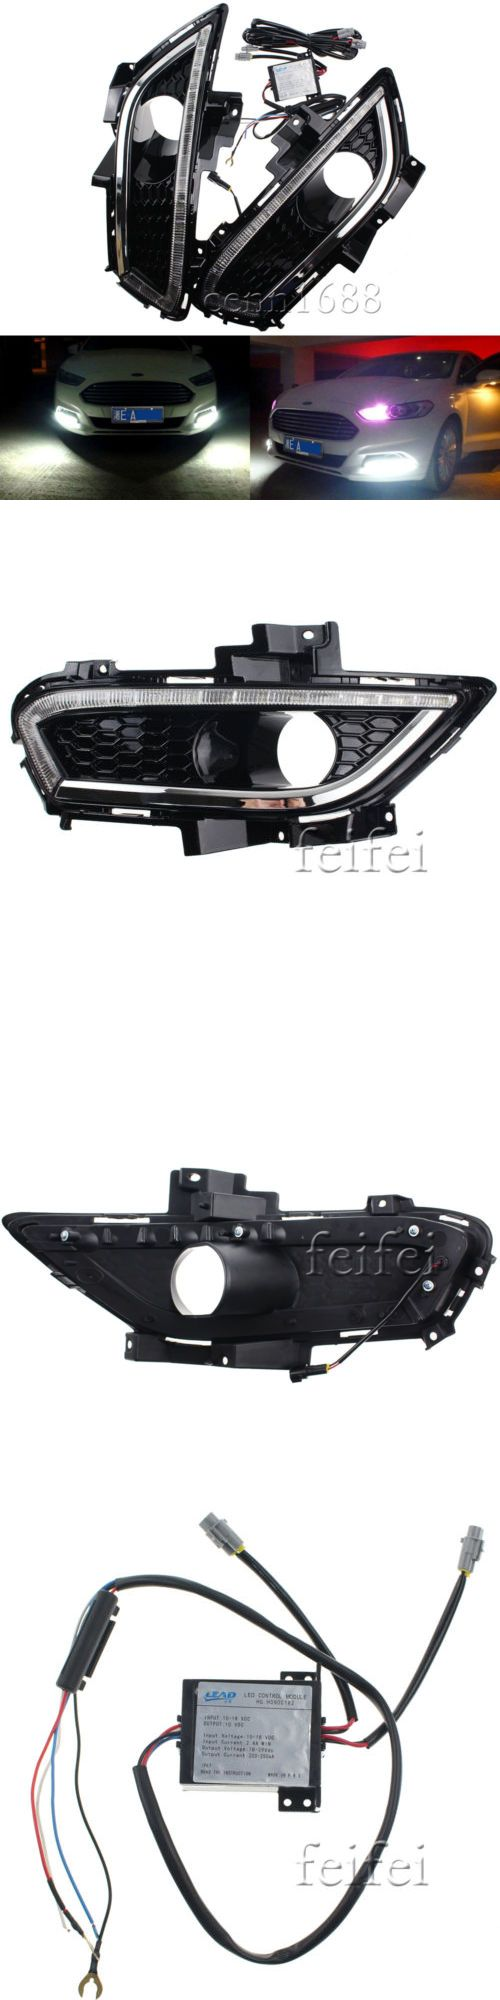 Motors parts and accessories 2x for ford mondeo fusion drl 2013 2014 led daytime running